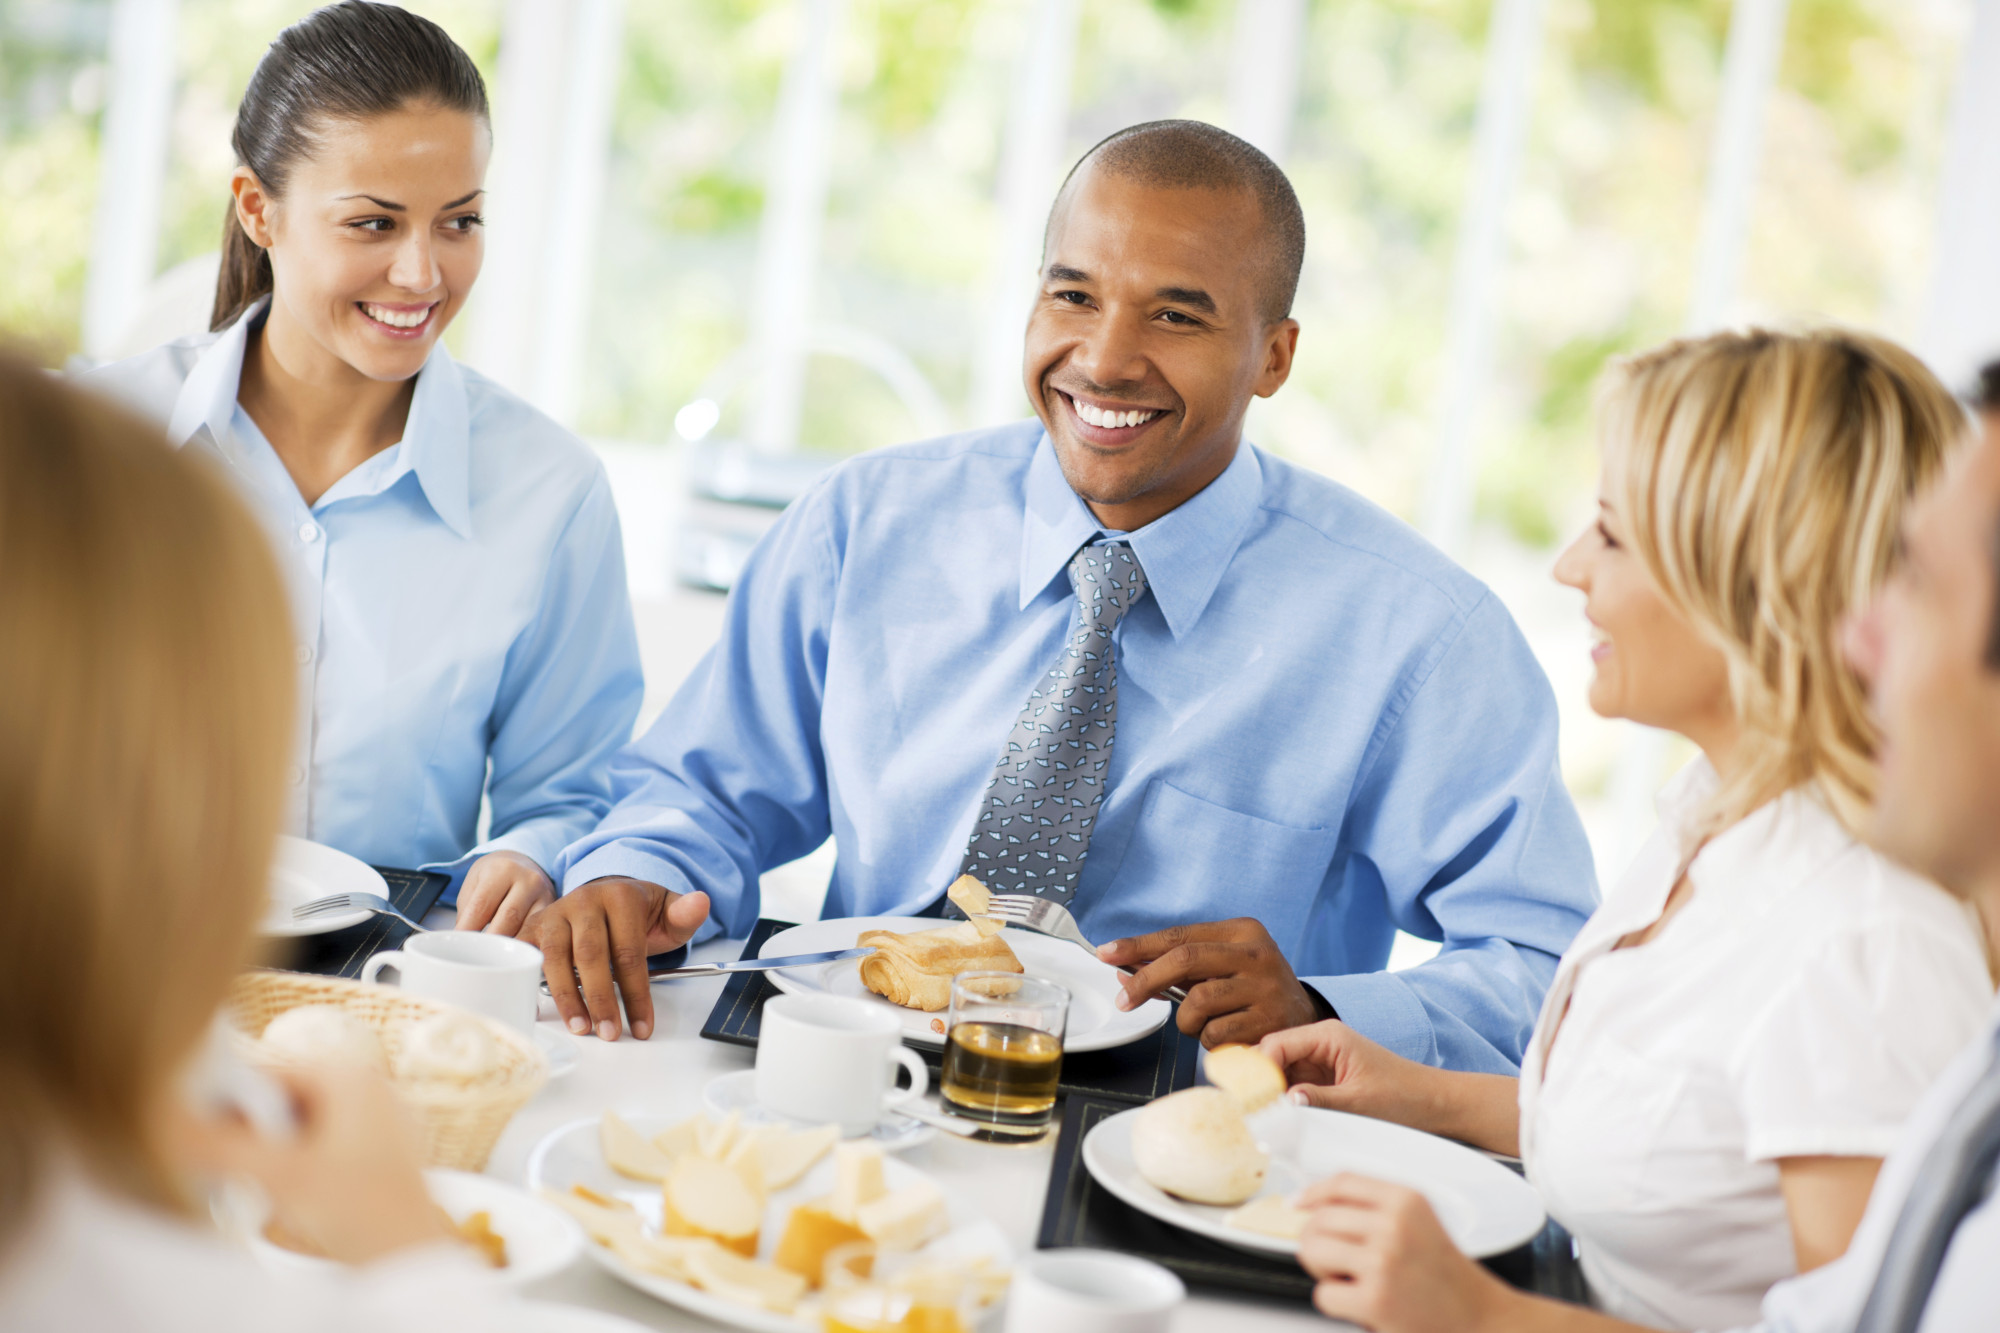 The Business Lunch 7 Simple Dining Skills You Can T